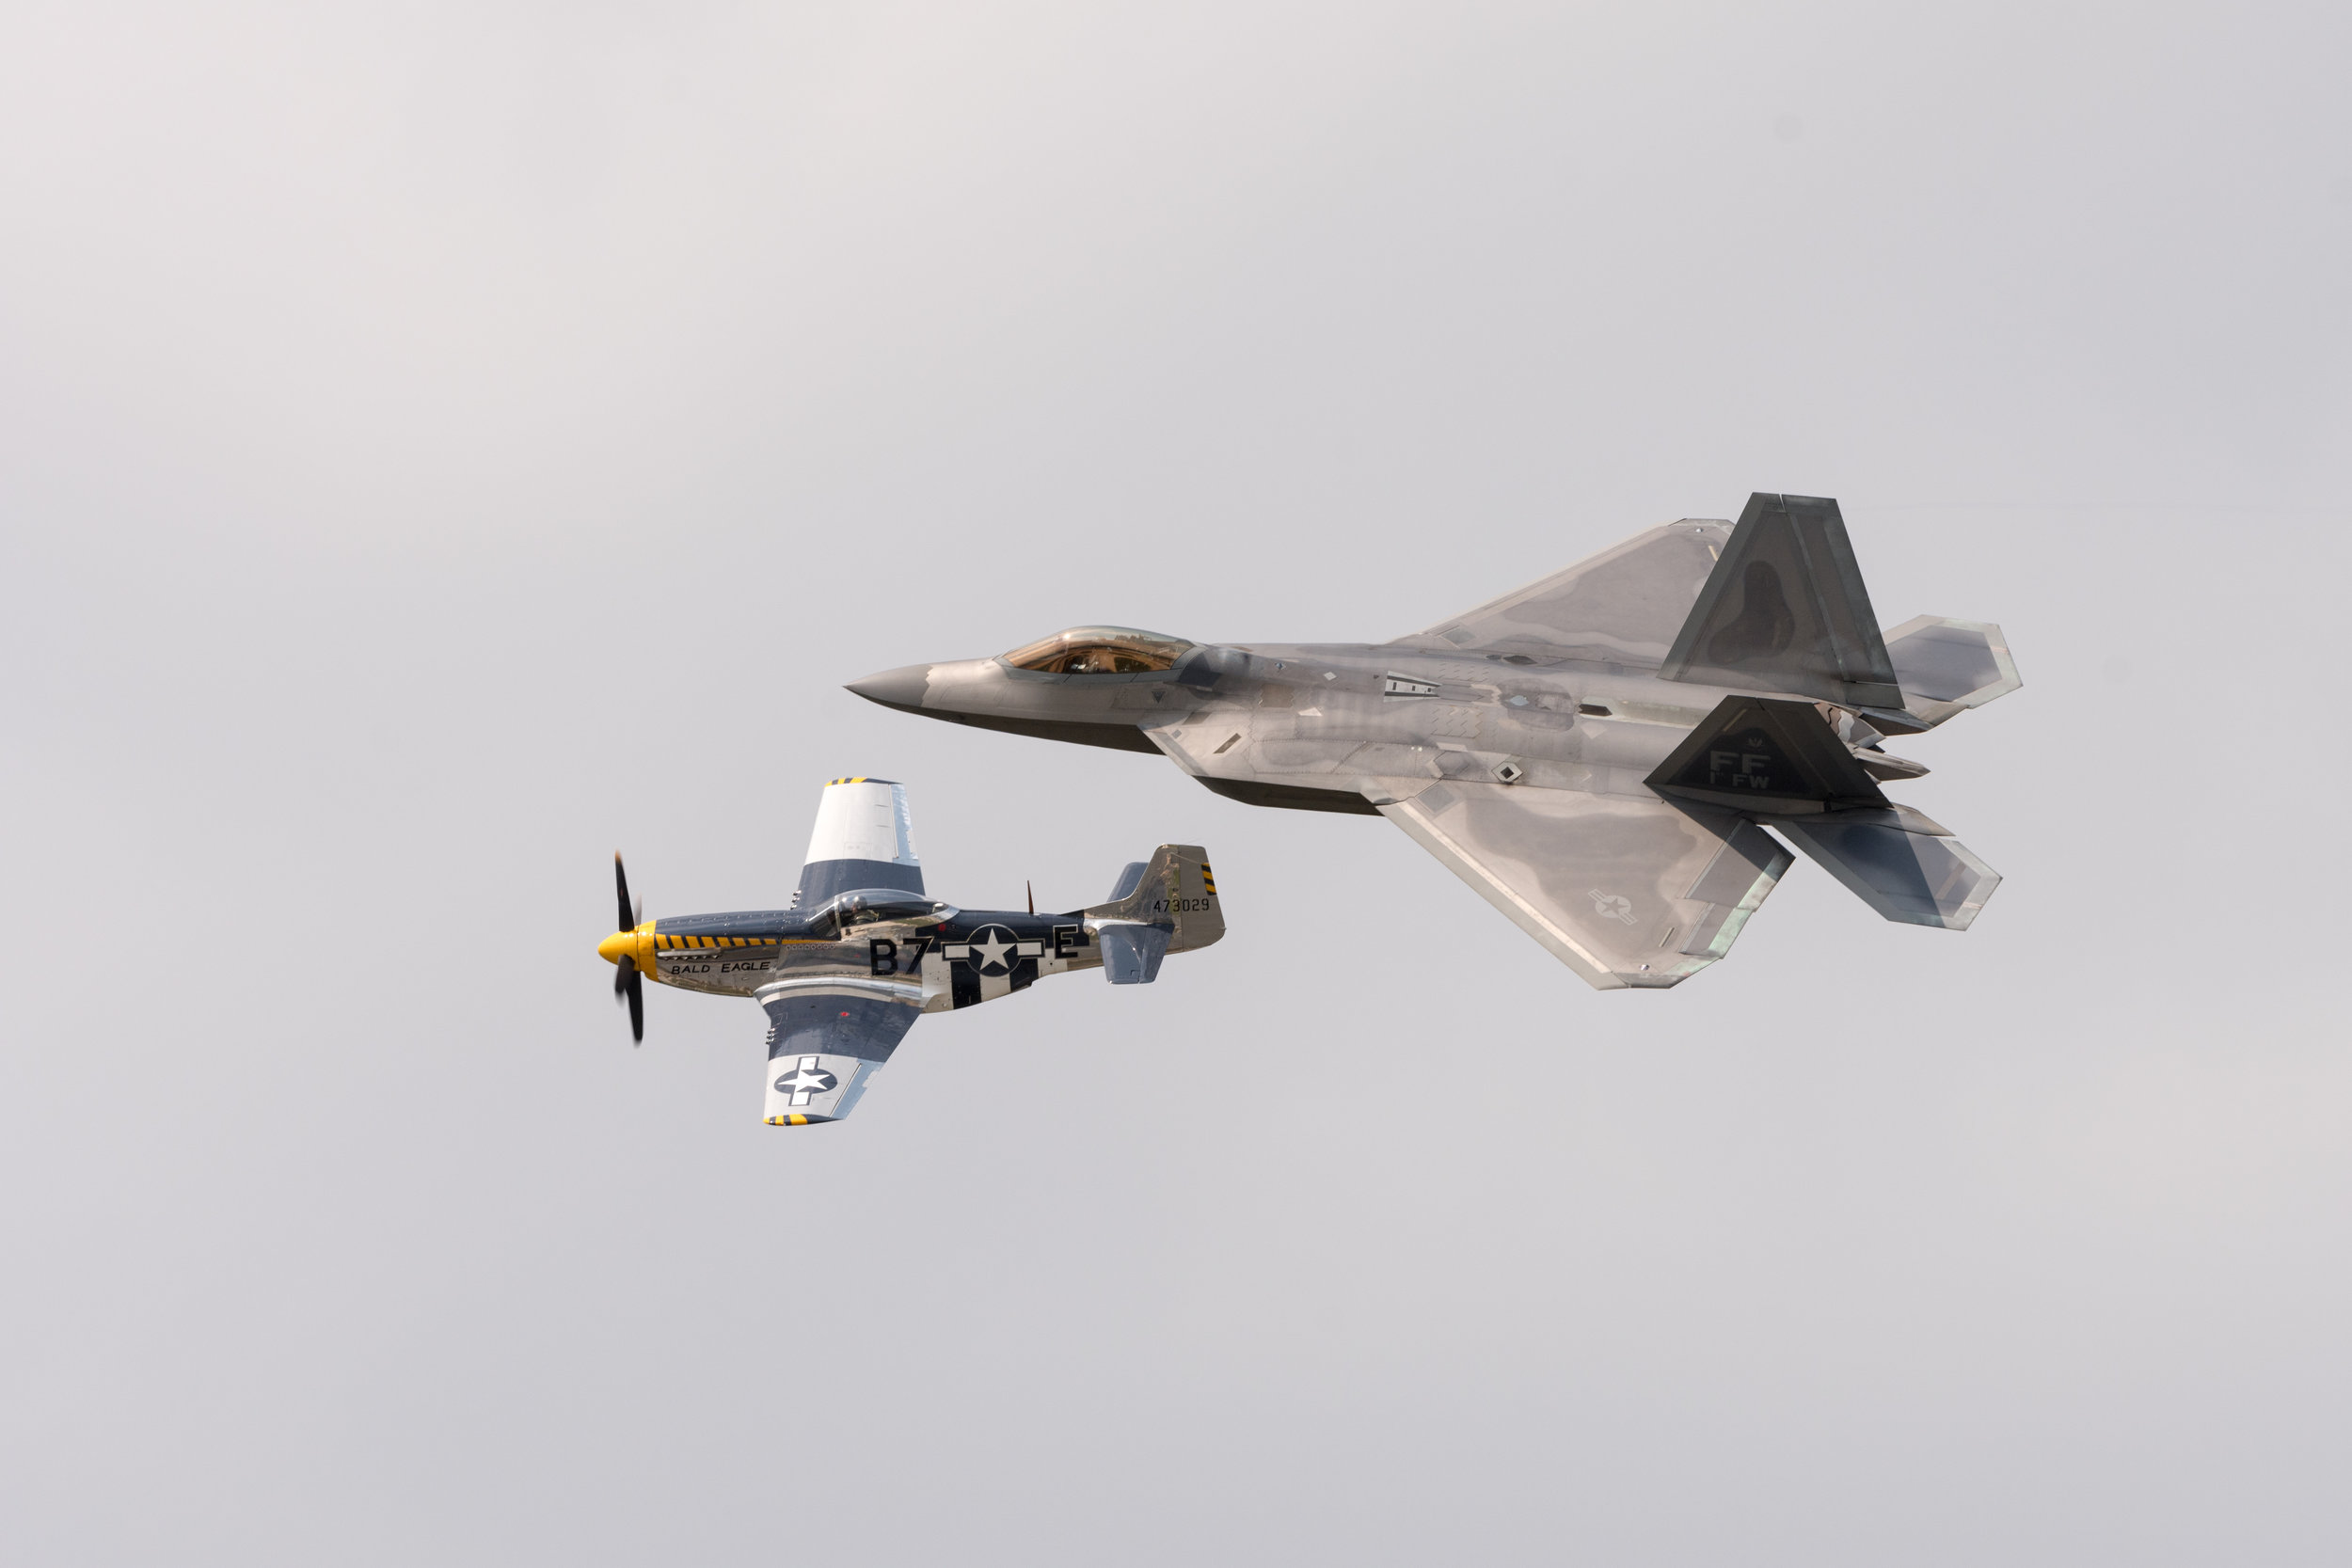 F-22 Raptor and P-51 Mustang Heritage flight at the Oceana Airshow